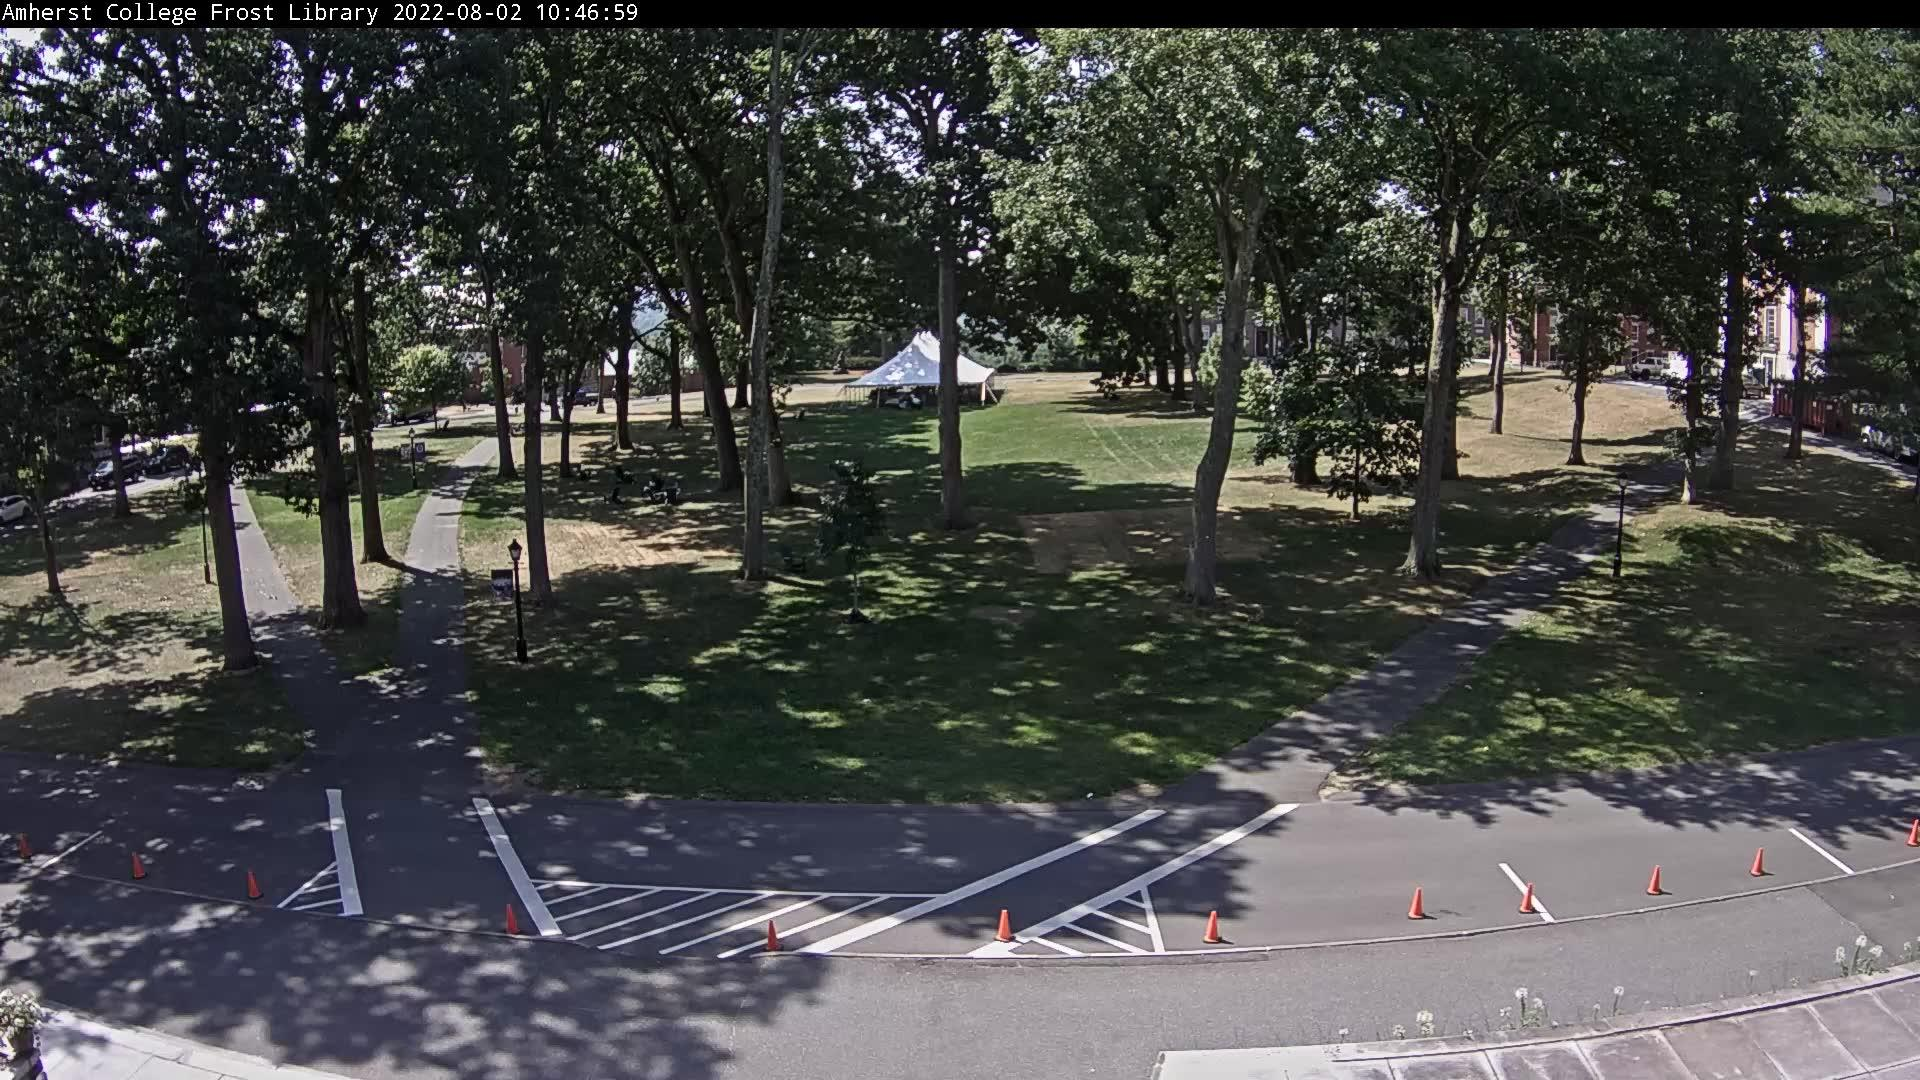 Webcam Amherst Center: Amherst College Main Quadrangle